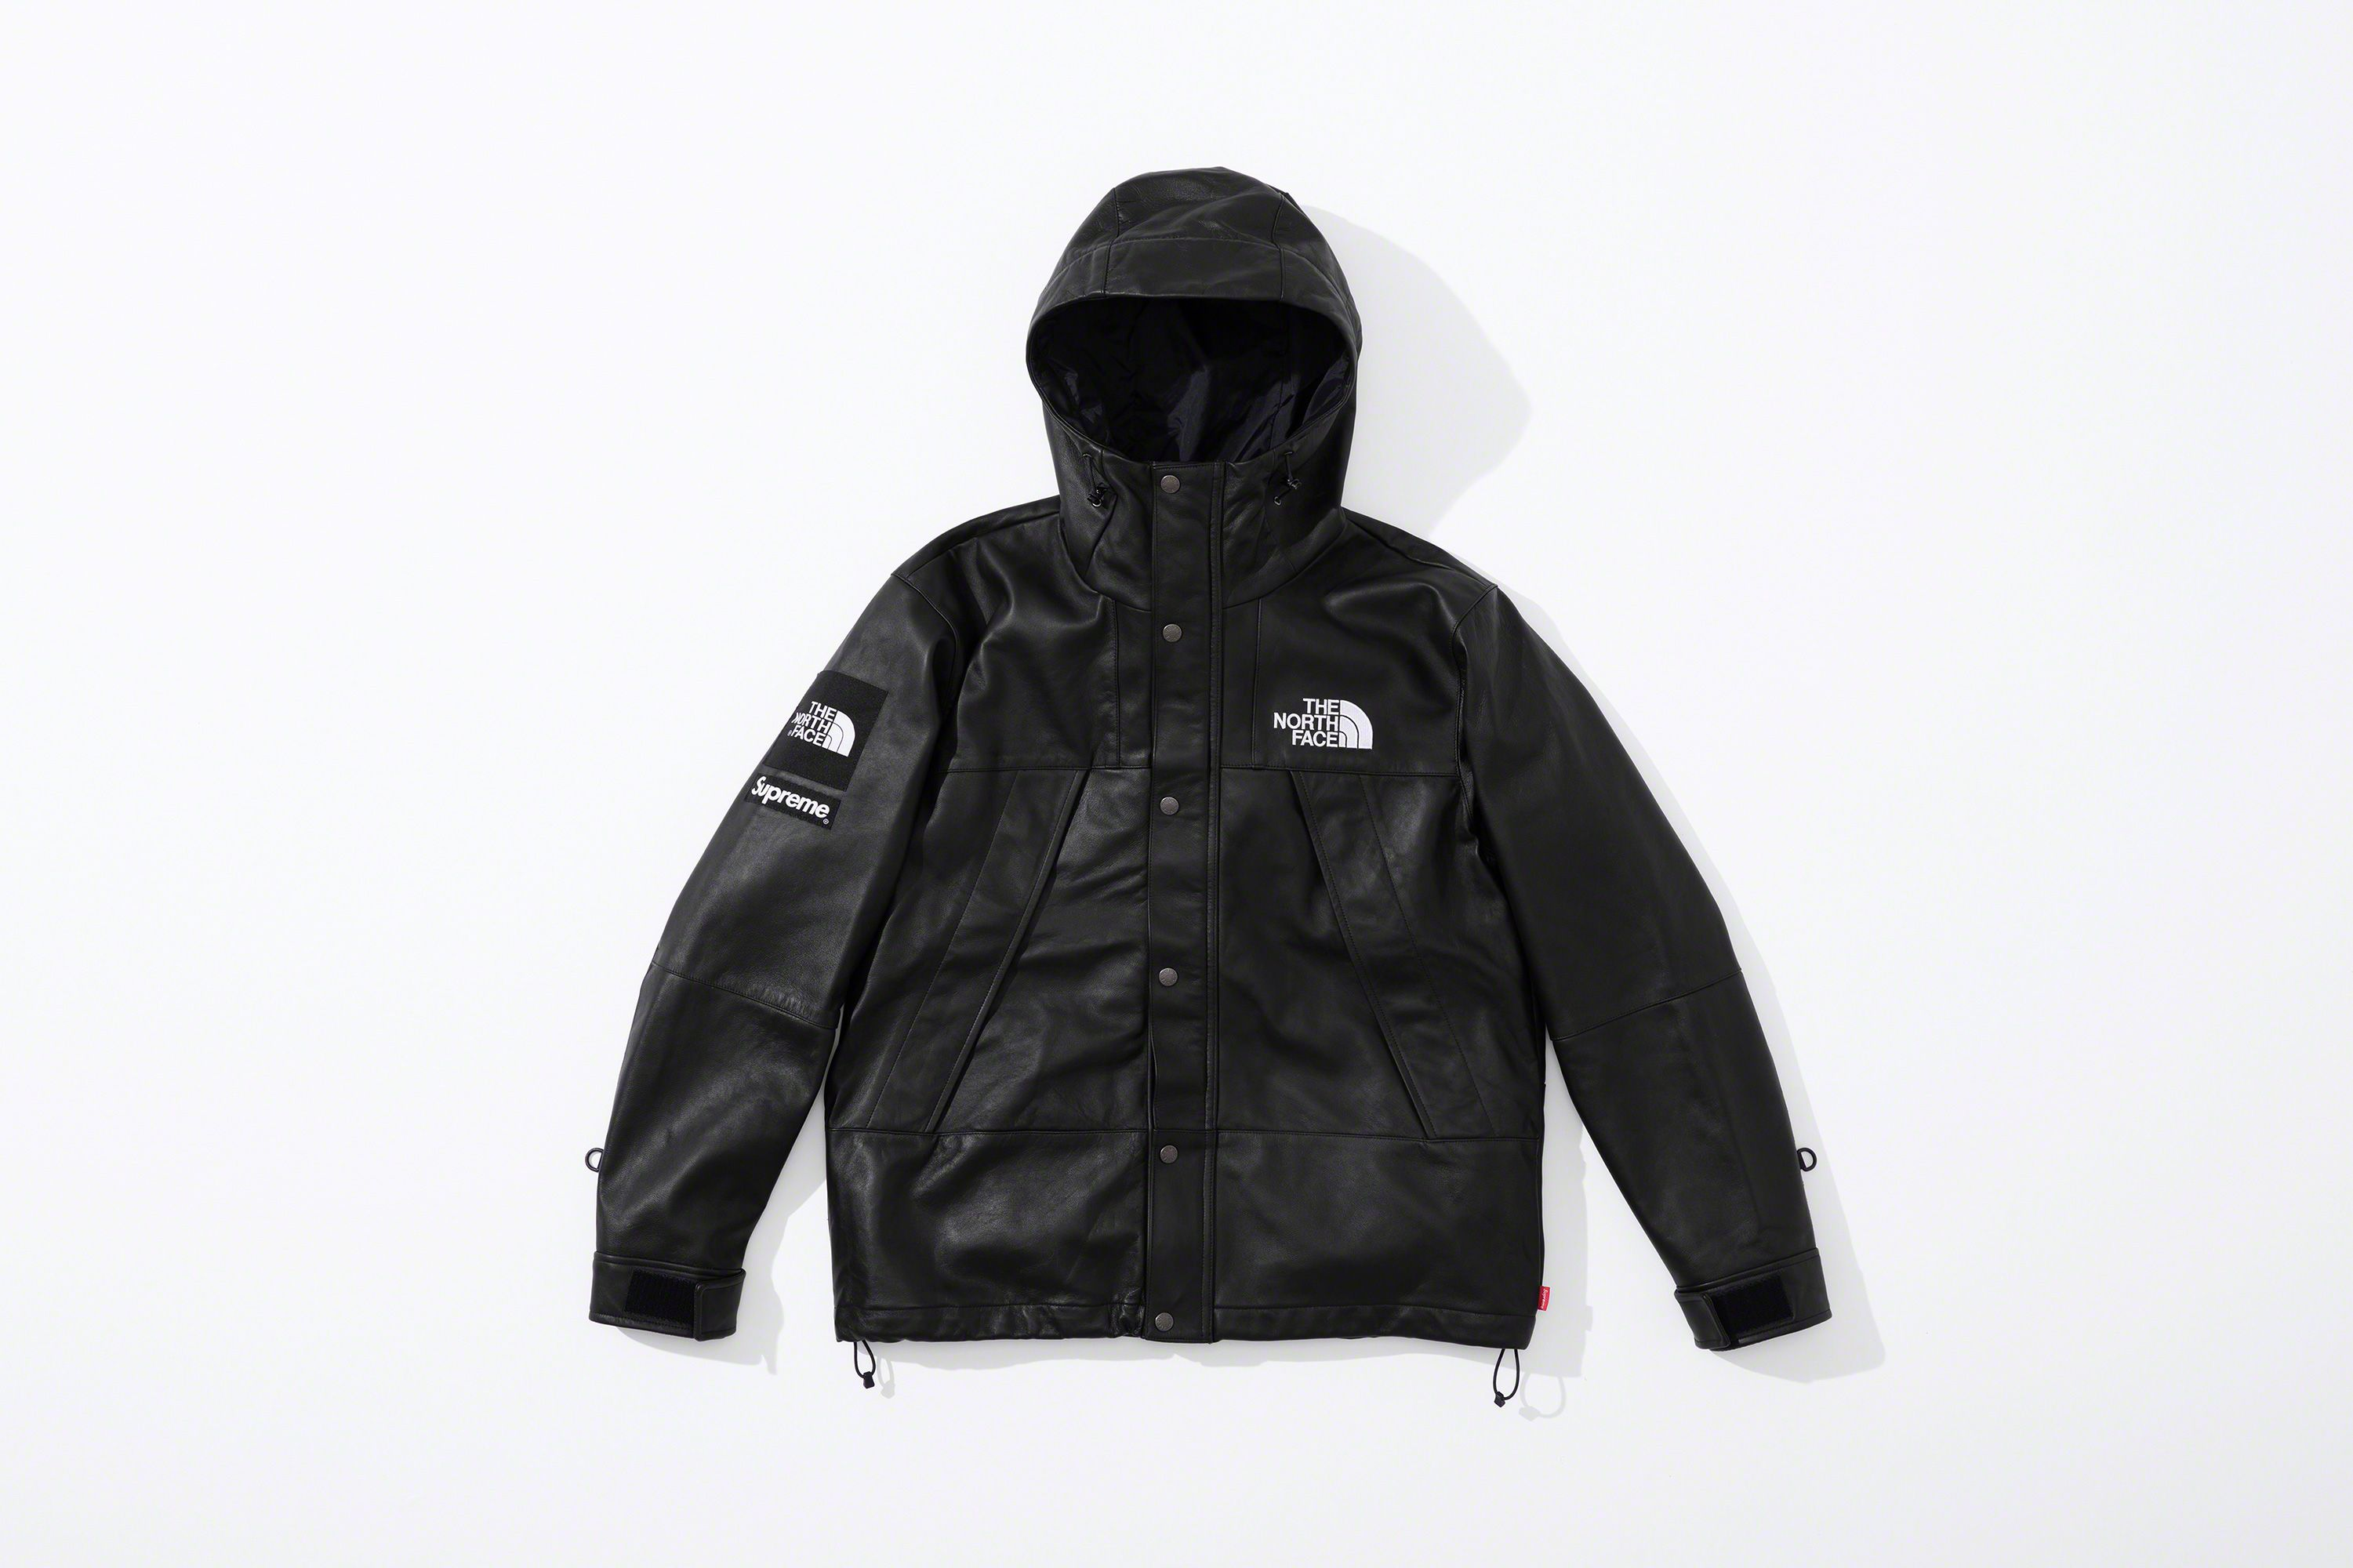 264e545259 Supreme and The North Face Collaboration Brings Streetwear Vibe to Outdoor  Clothing